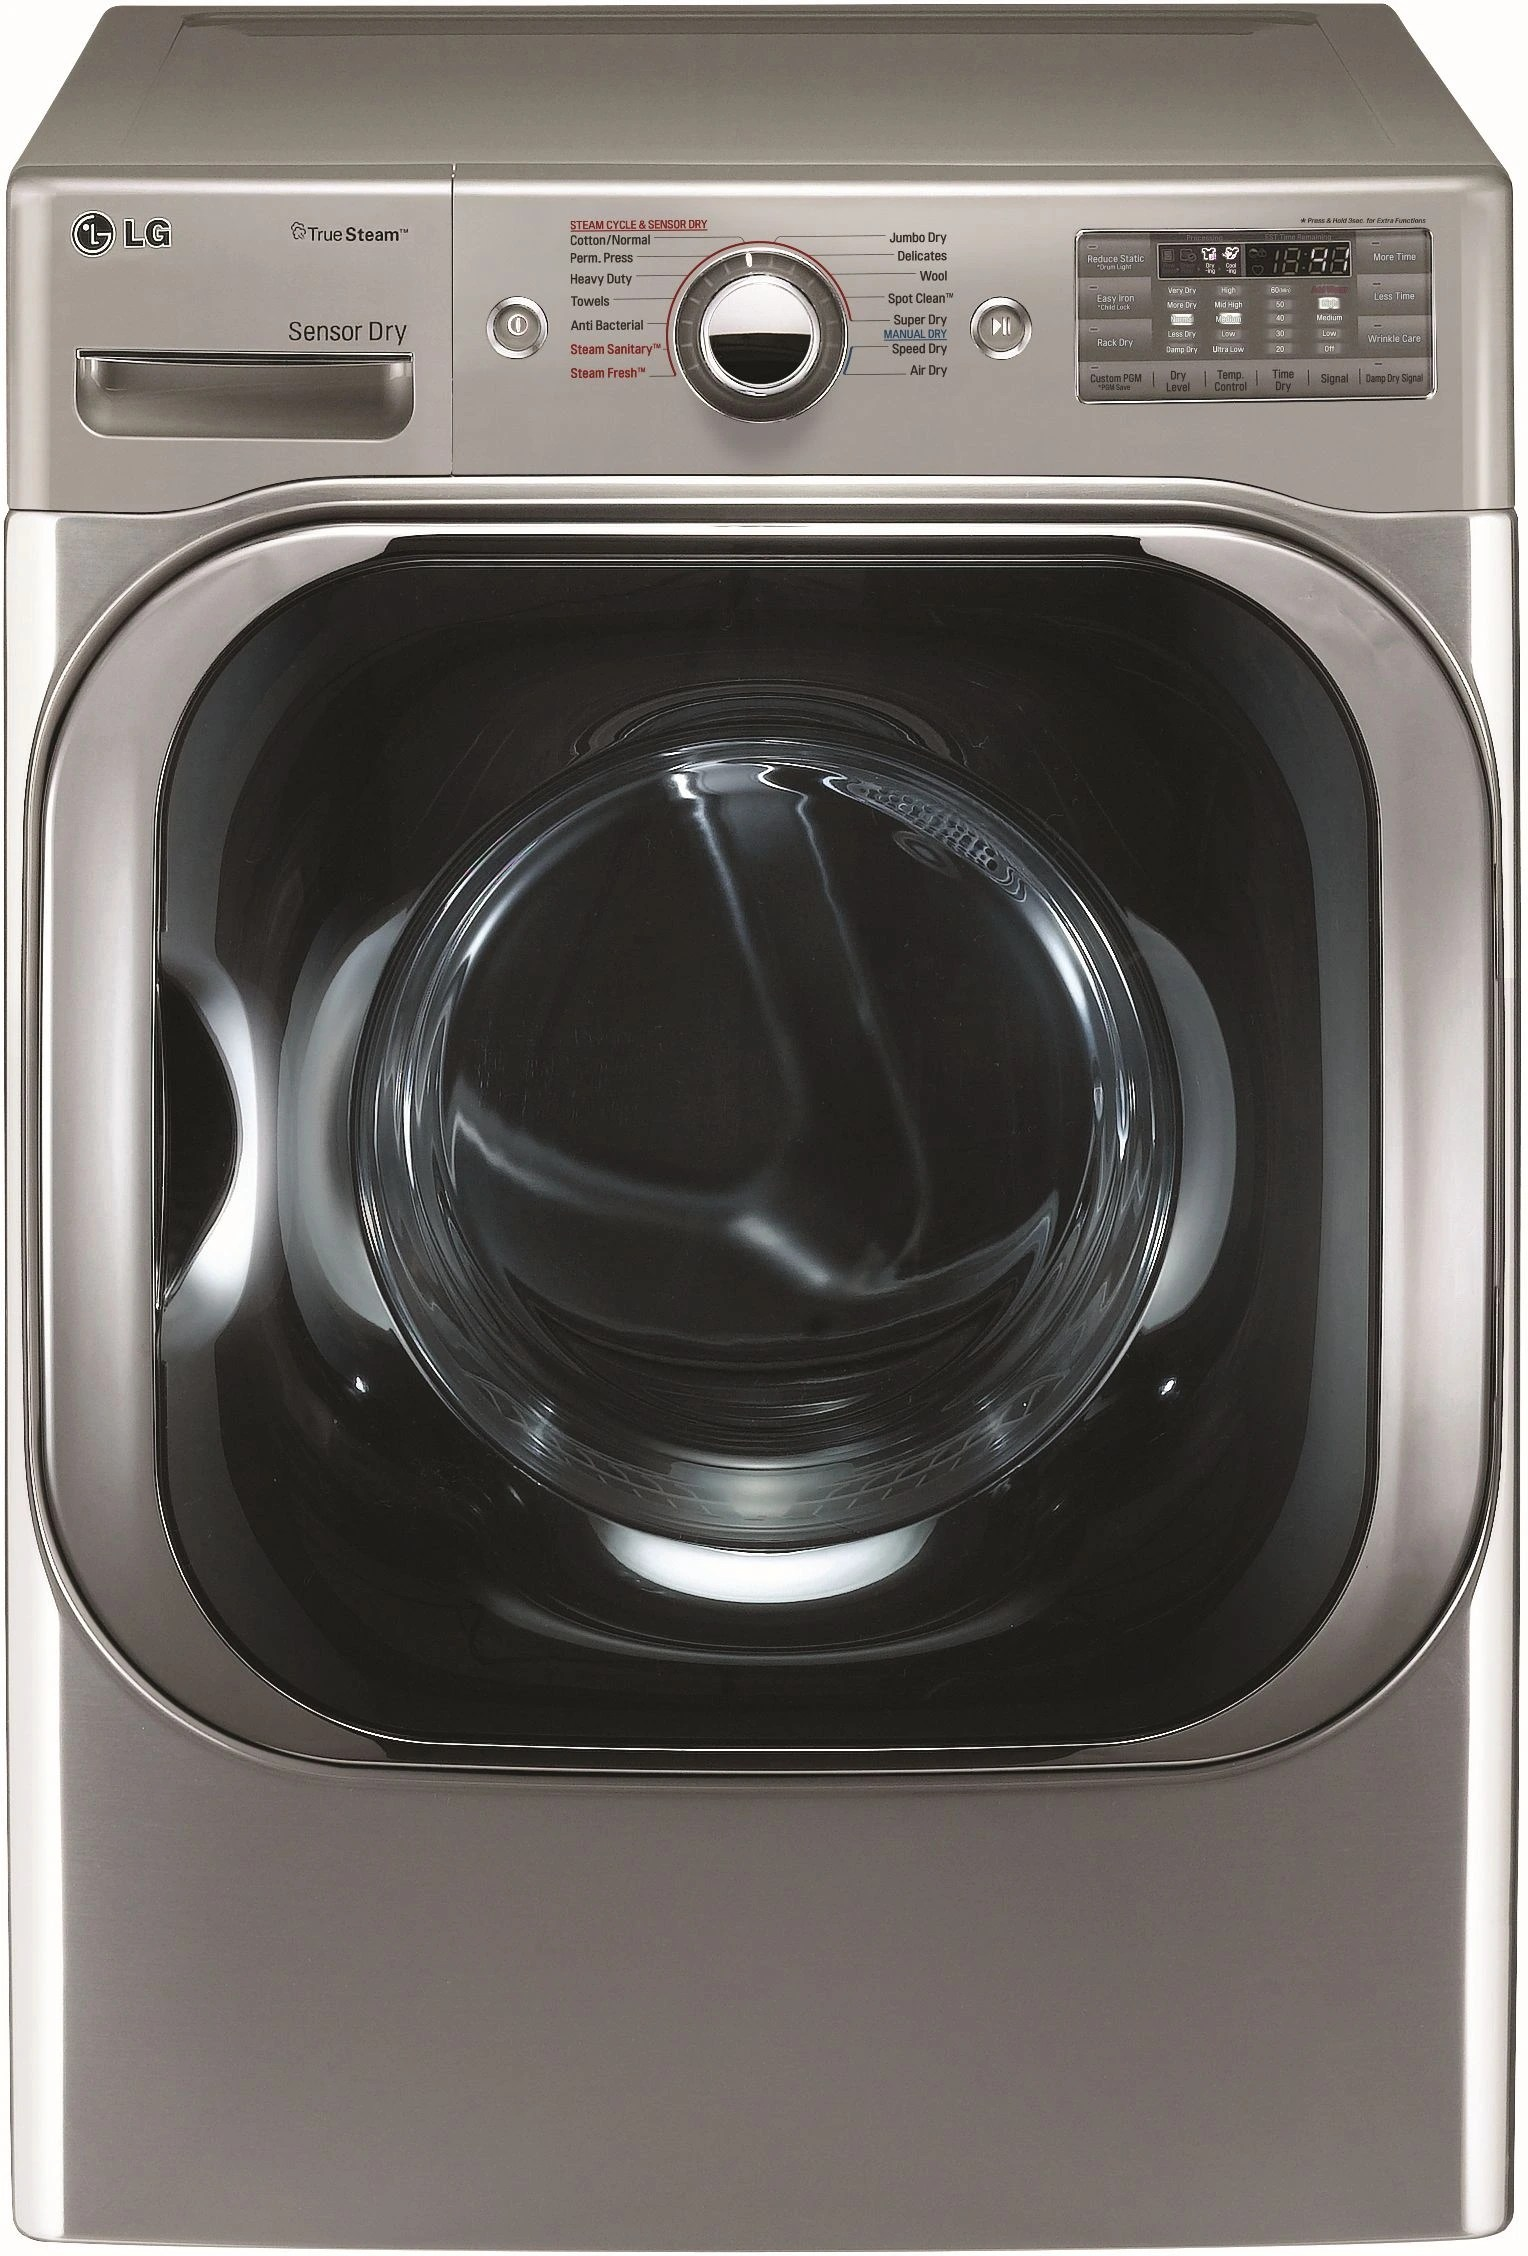 hight resolution of lg front load electric dryer graphite steel dlex8100v